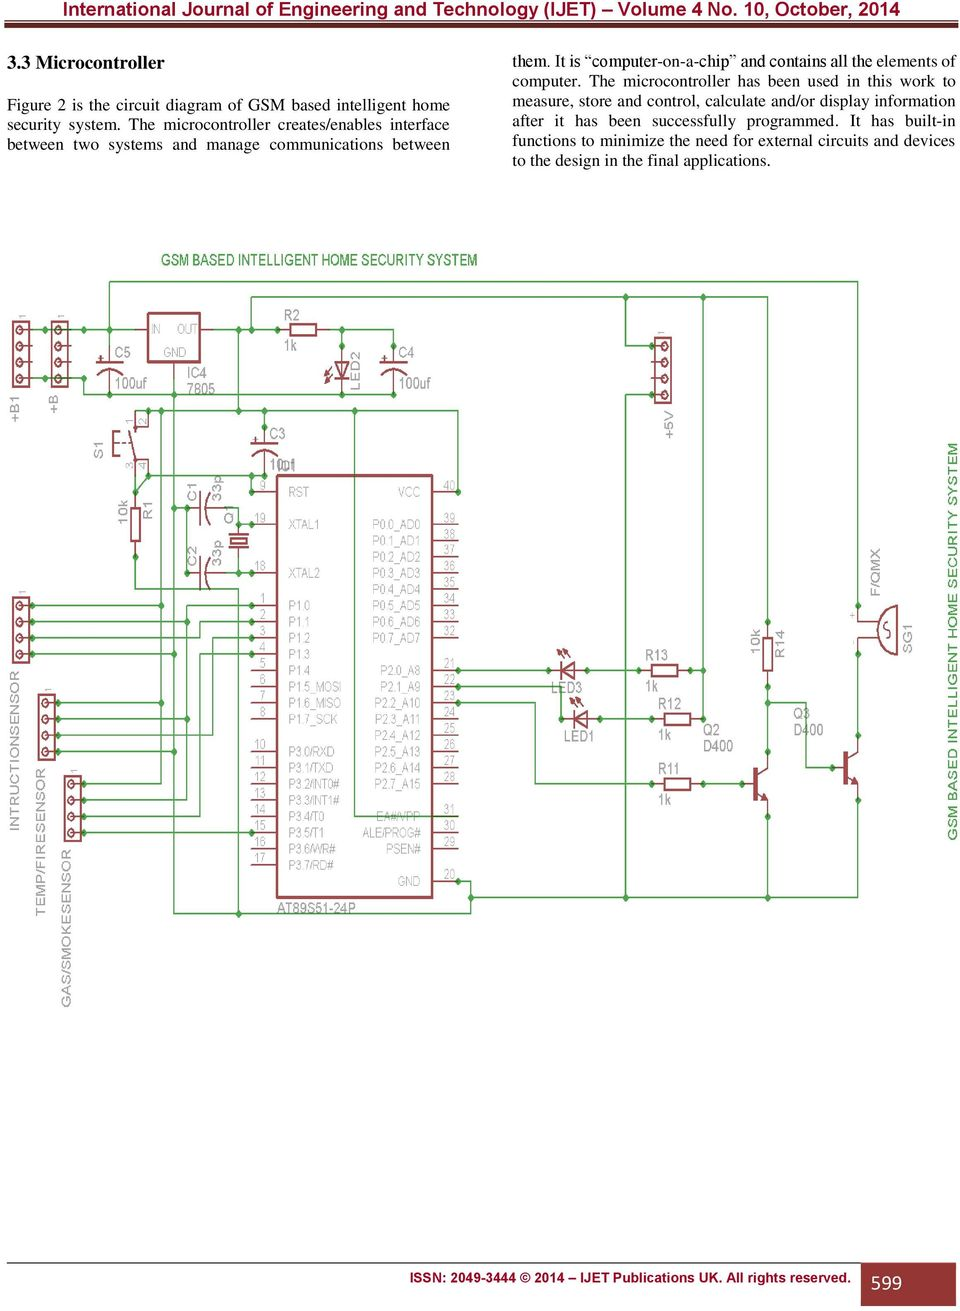 Gsm based intelligent home security system for intrusion detection pdf it is computer on a chip and contains all the elements of computer 6 figure 2 circuit diagram of gsm based intelligent home system ccuart Images